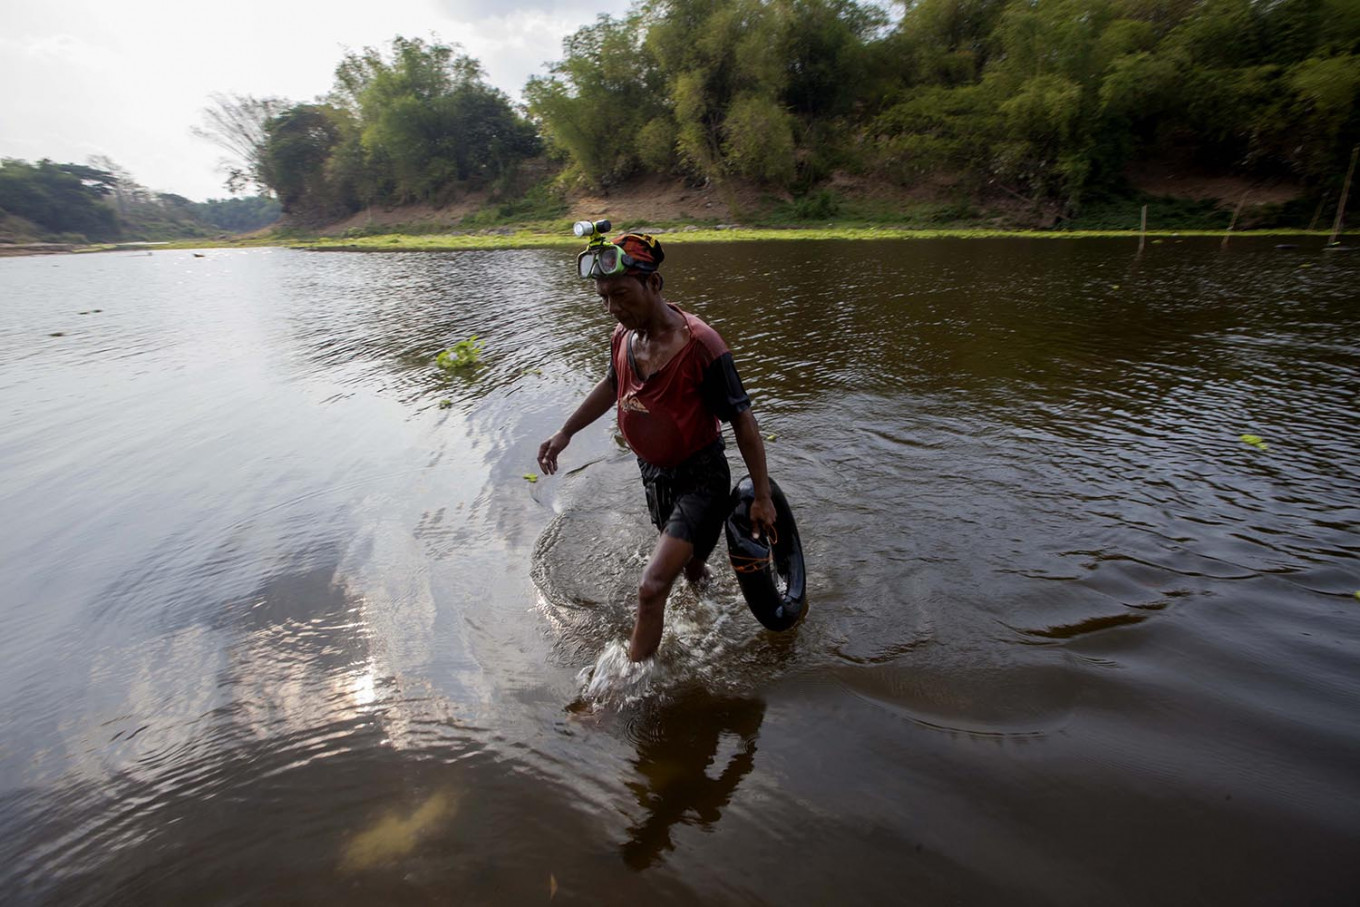 Another day: A treasure hunter walks to the riverbank after searching for valuables in its depths. JP/ Sigit Pamungkas